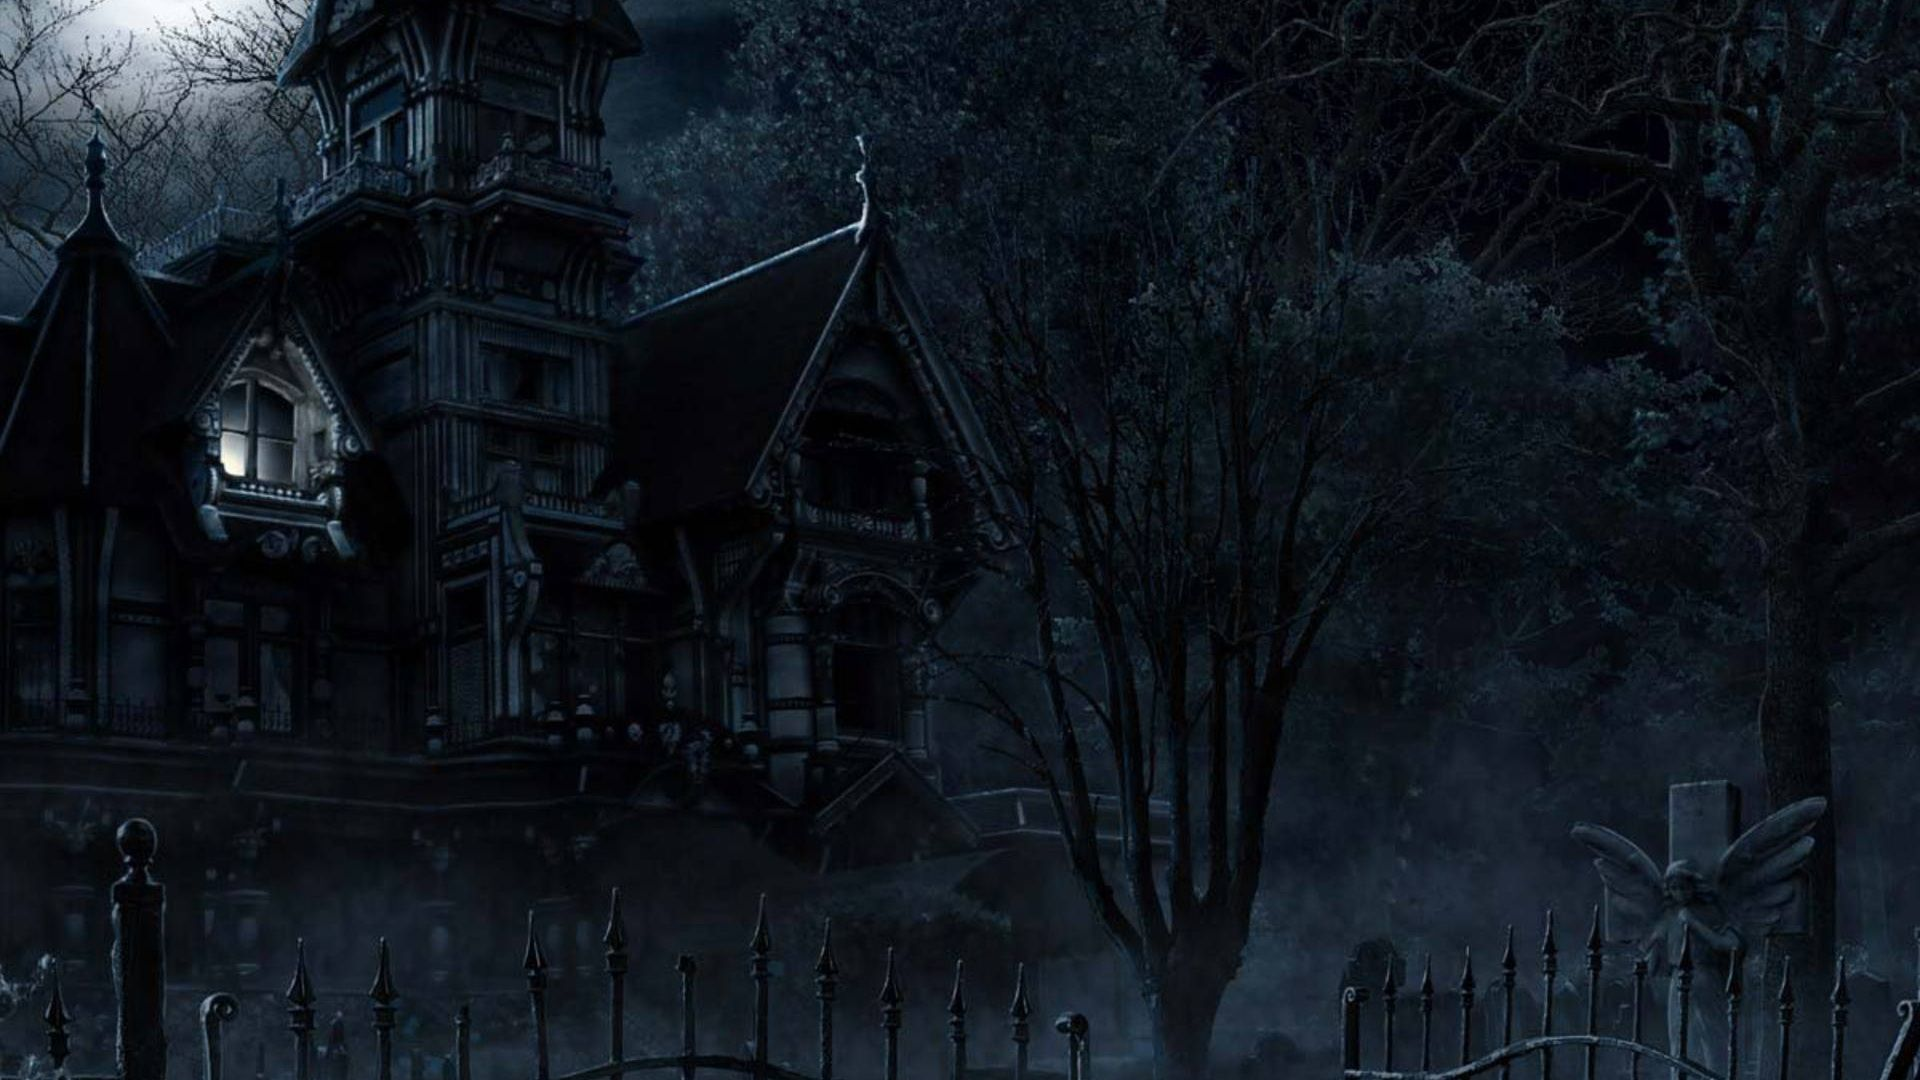 1920x1080 7 Free Halloween Wallpapers7 600x338 Halloween Wallpaper Backgrounds Pumpkin Wallpaper